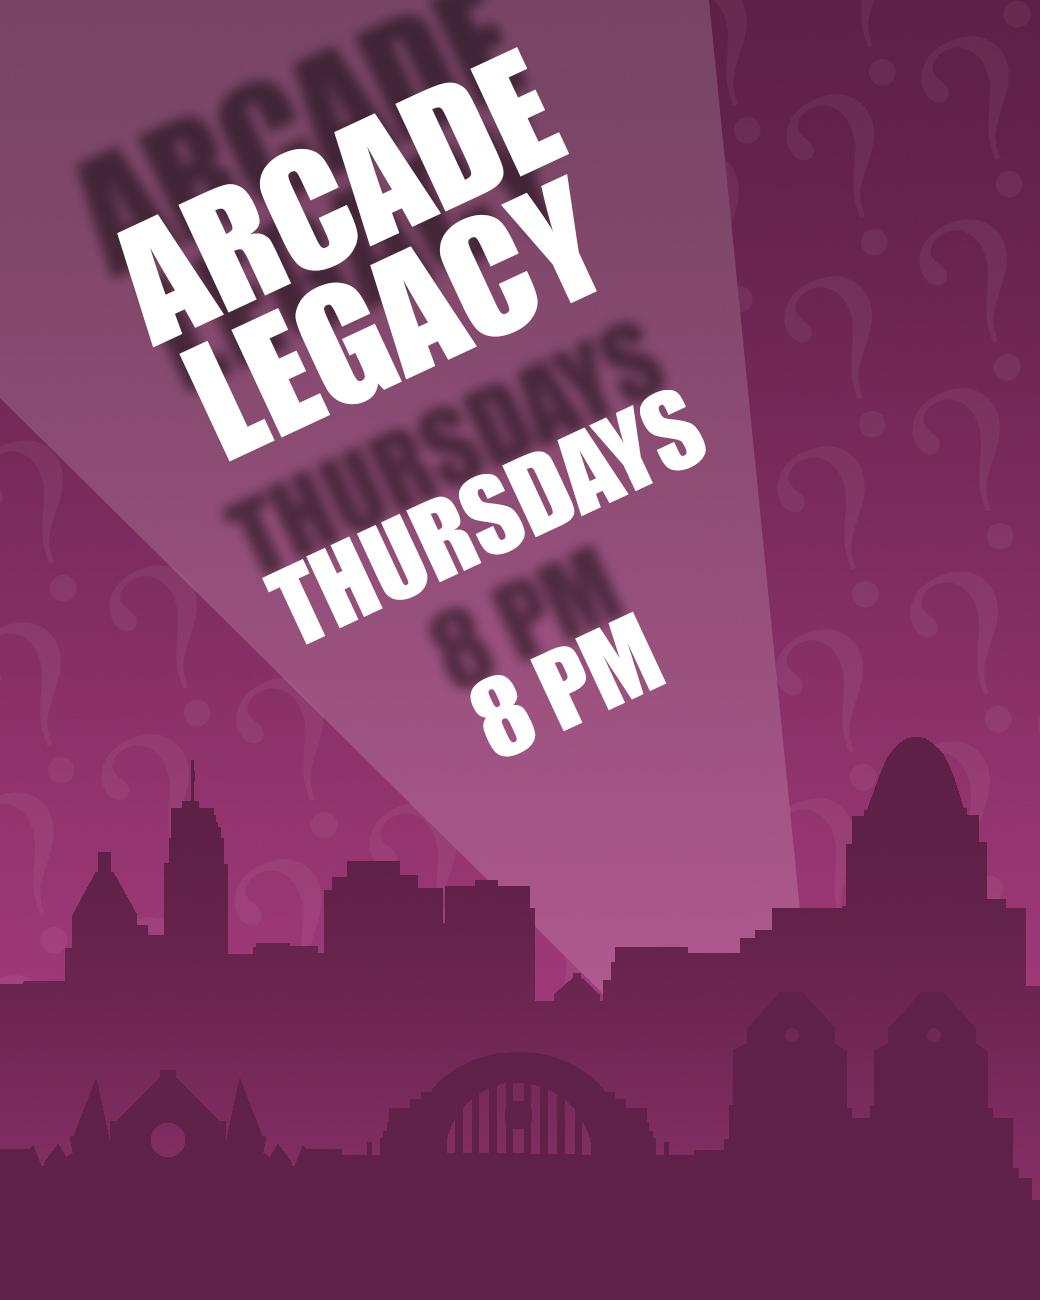 Arcade Legacy has trivia every Thursday starting at 8 PM. ADDRESS: 3929 Spring Grove Ave (45223) / Image: Phil Armstrong, Cincinnati Refined // Published: 8.30.17